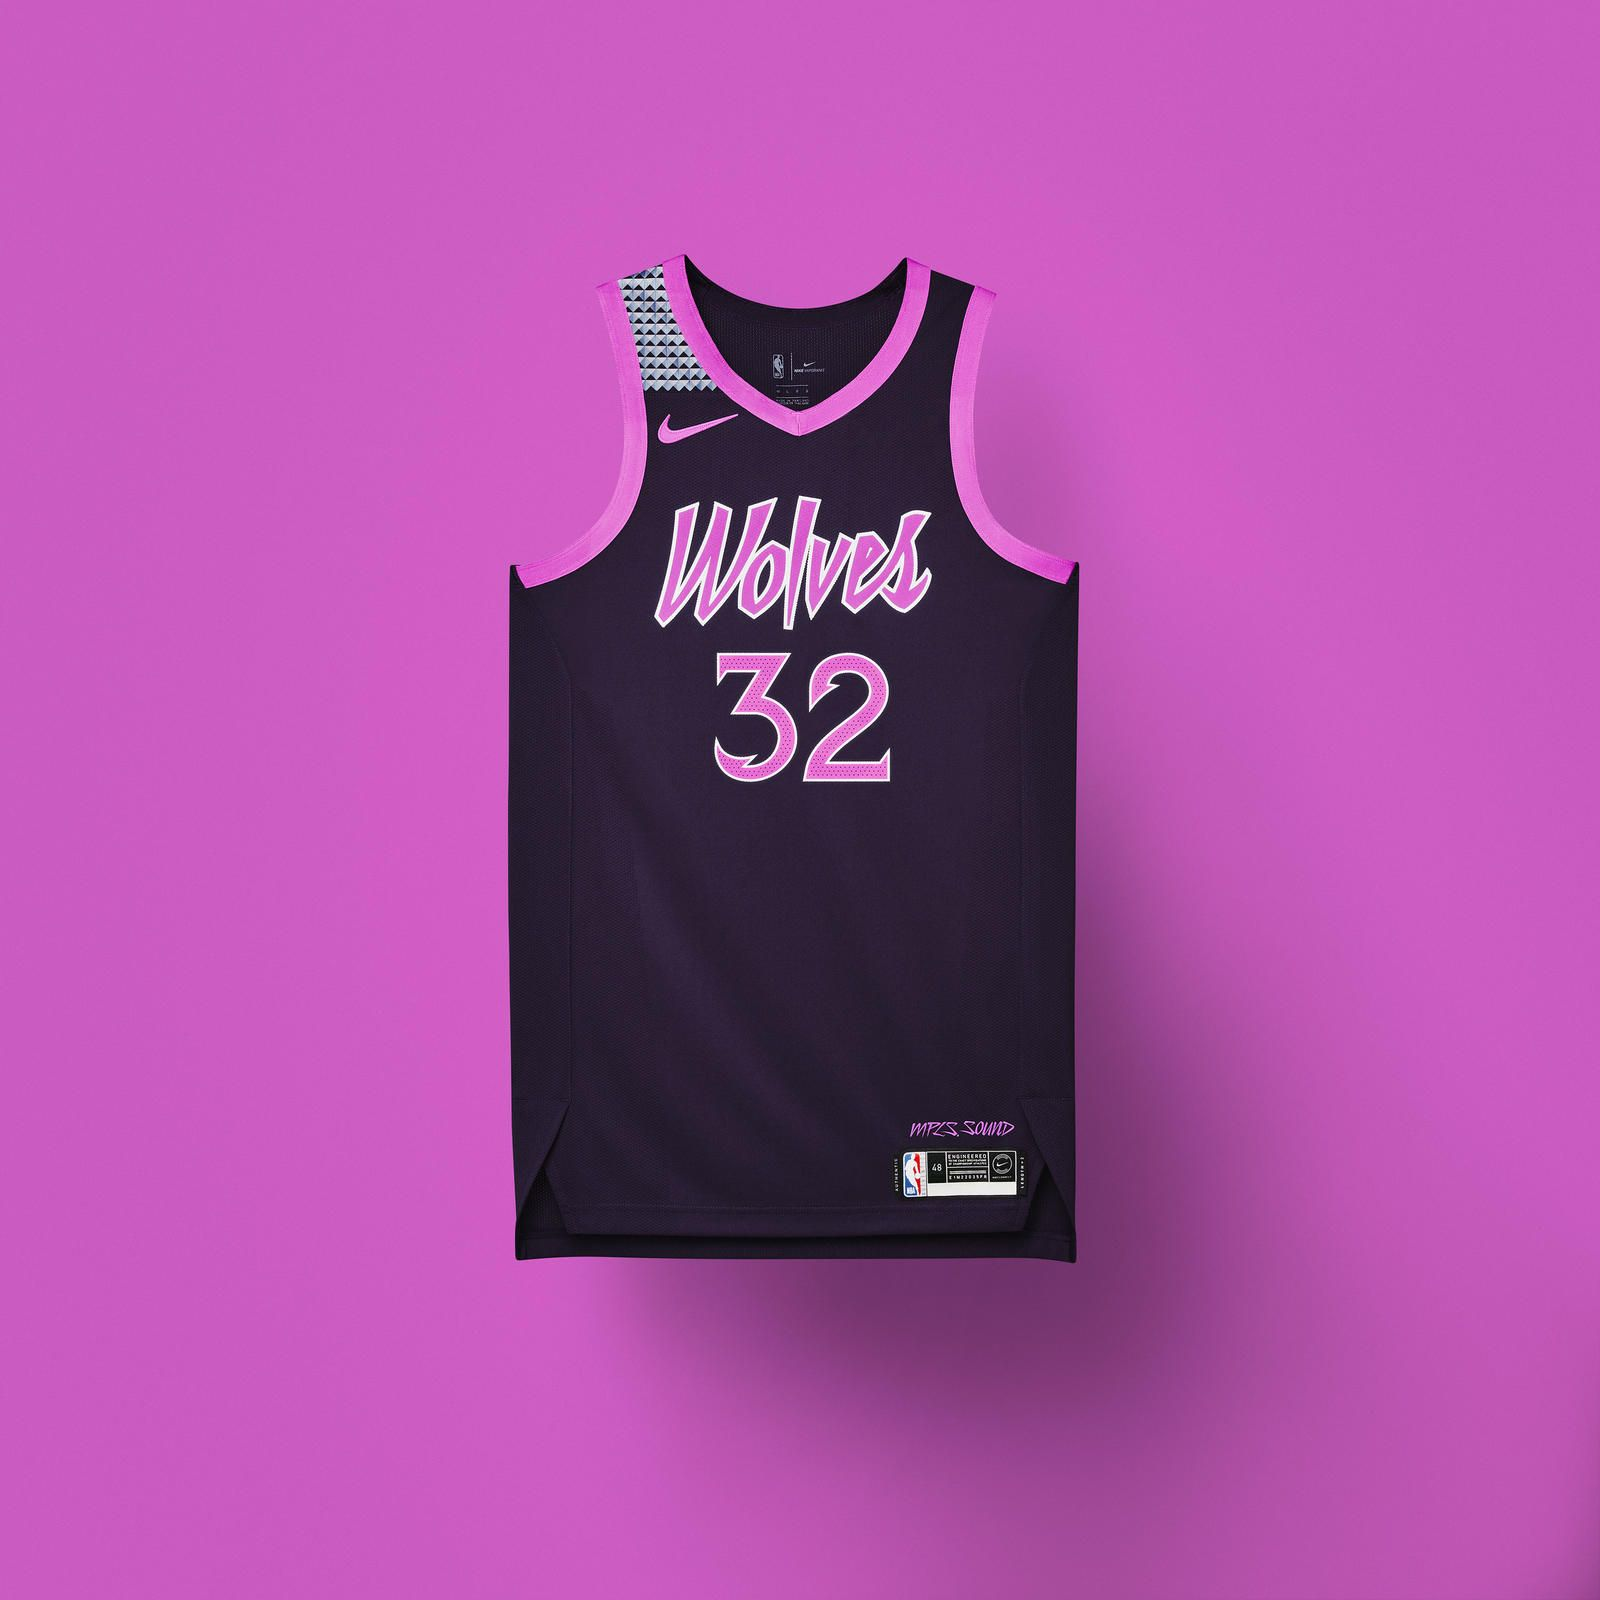 Nba Christmas Jerseys 2018 19.Here Are All Of The Nba City Edition Uniforms For 2018 19